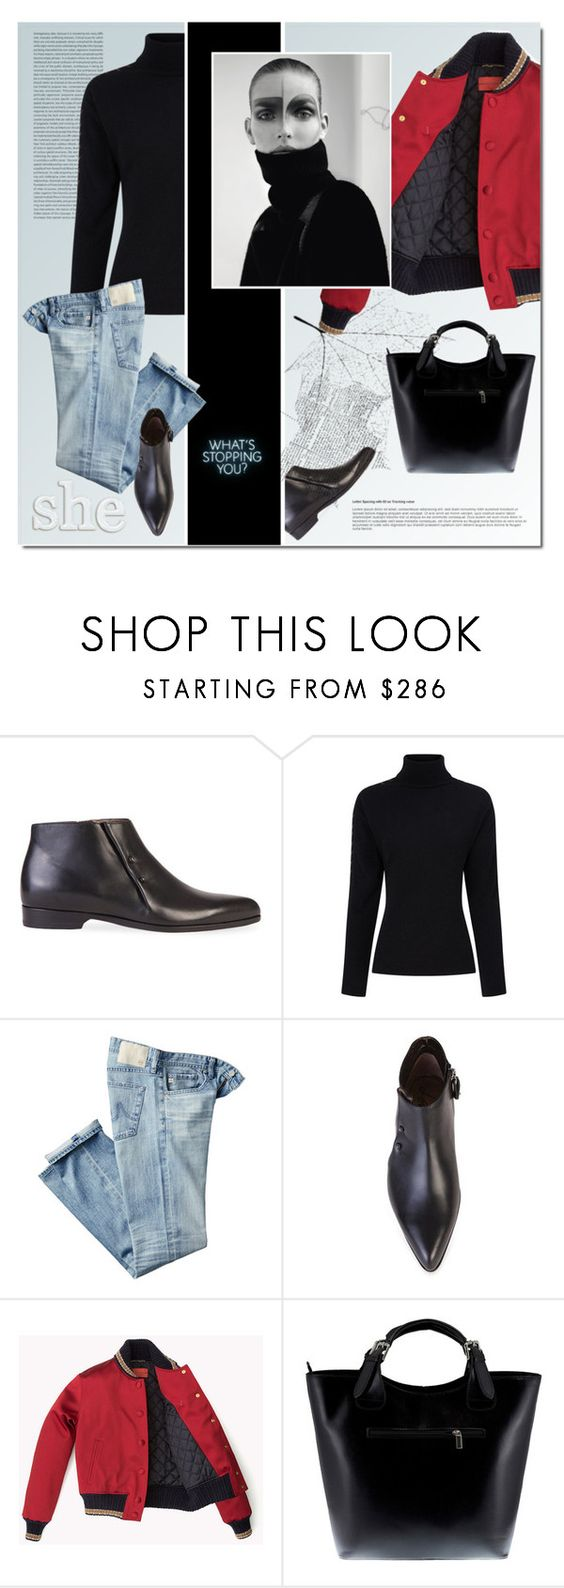 """my style"" by drn57 ❤ liked on Polyvore featuring Lanvin, Preen, AG Adriano Goldschmied, Massimo Castelli and MyStyle"